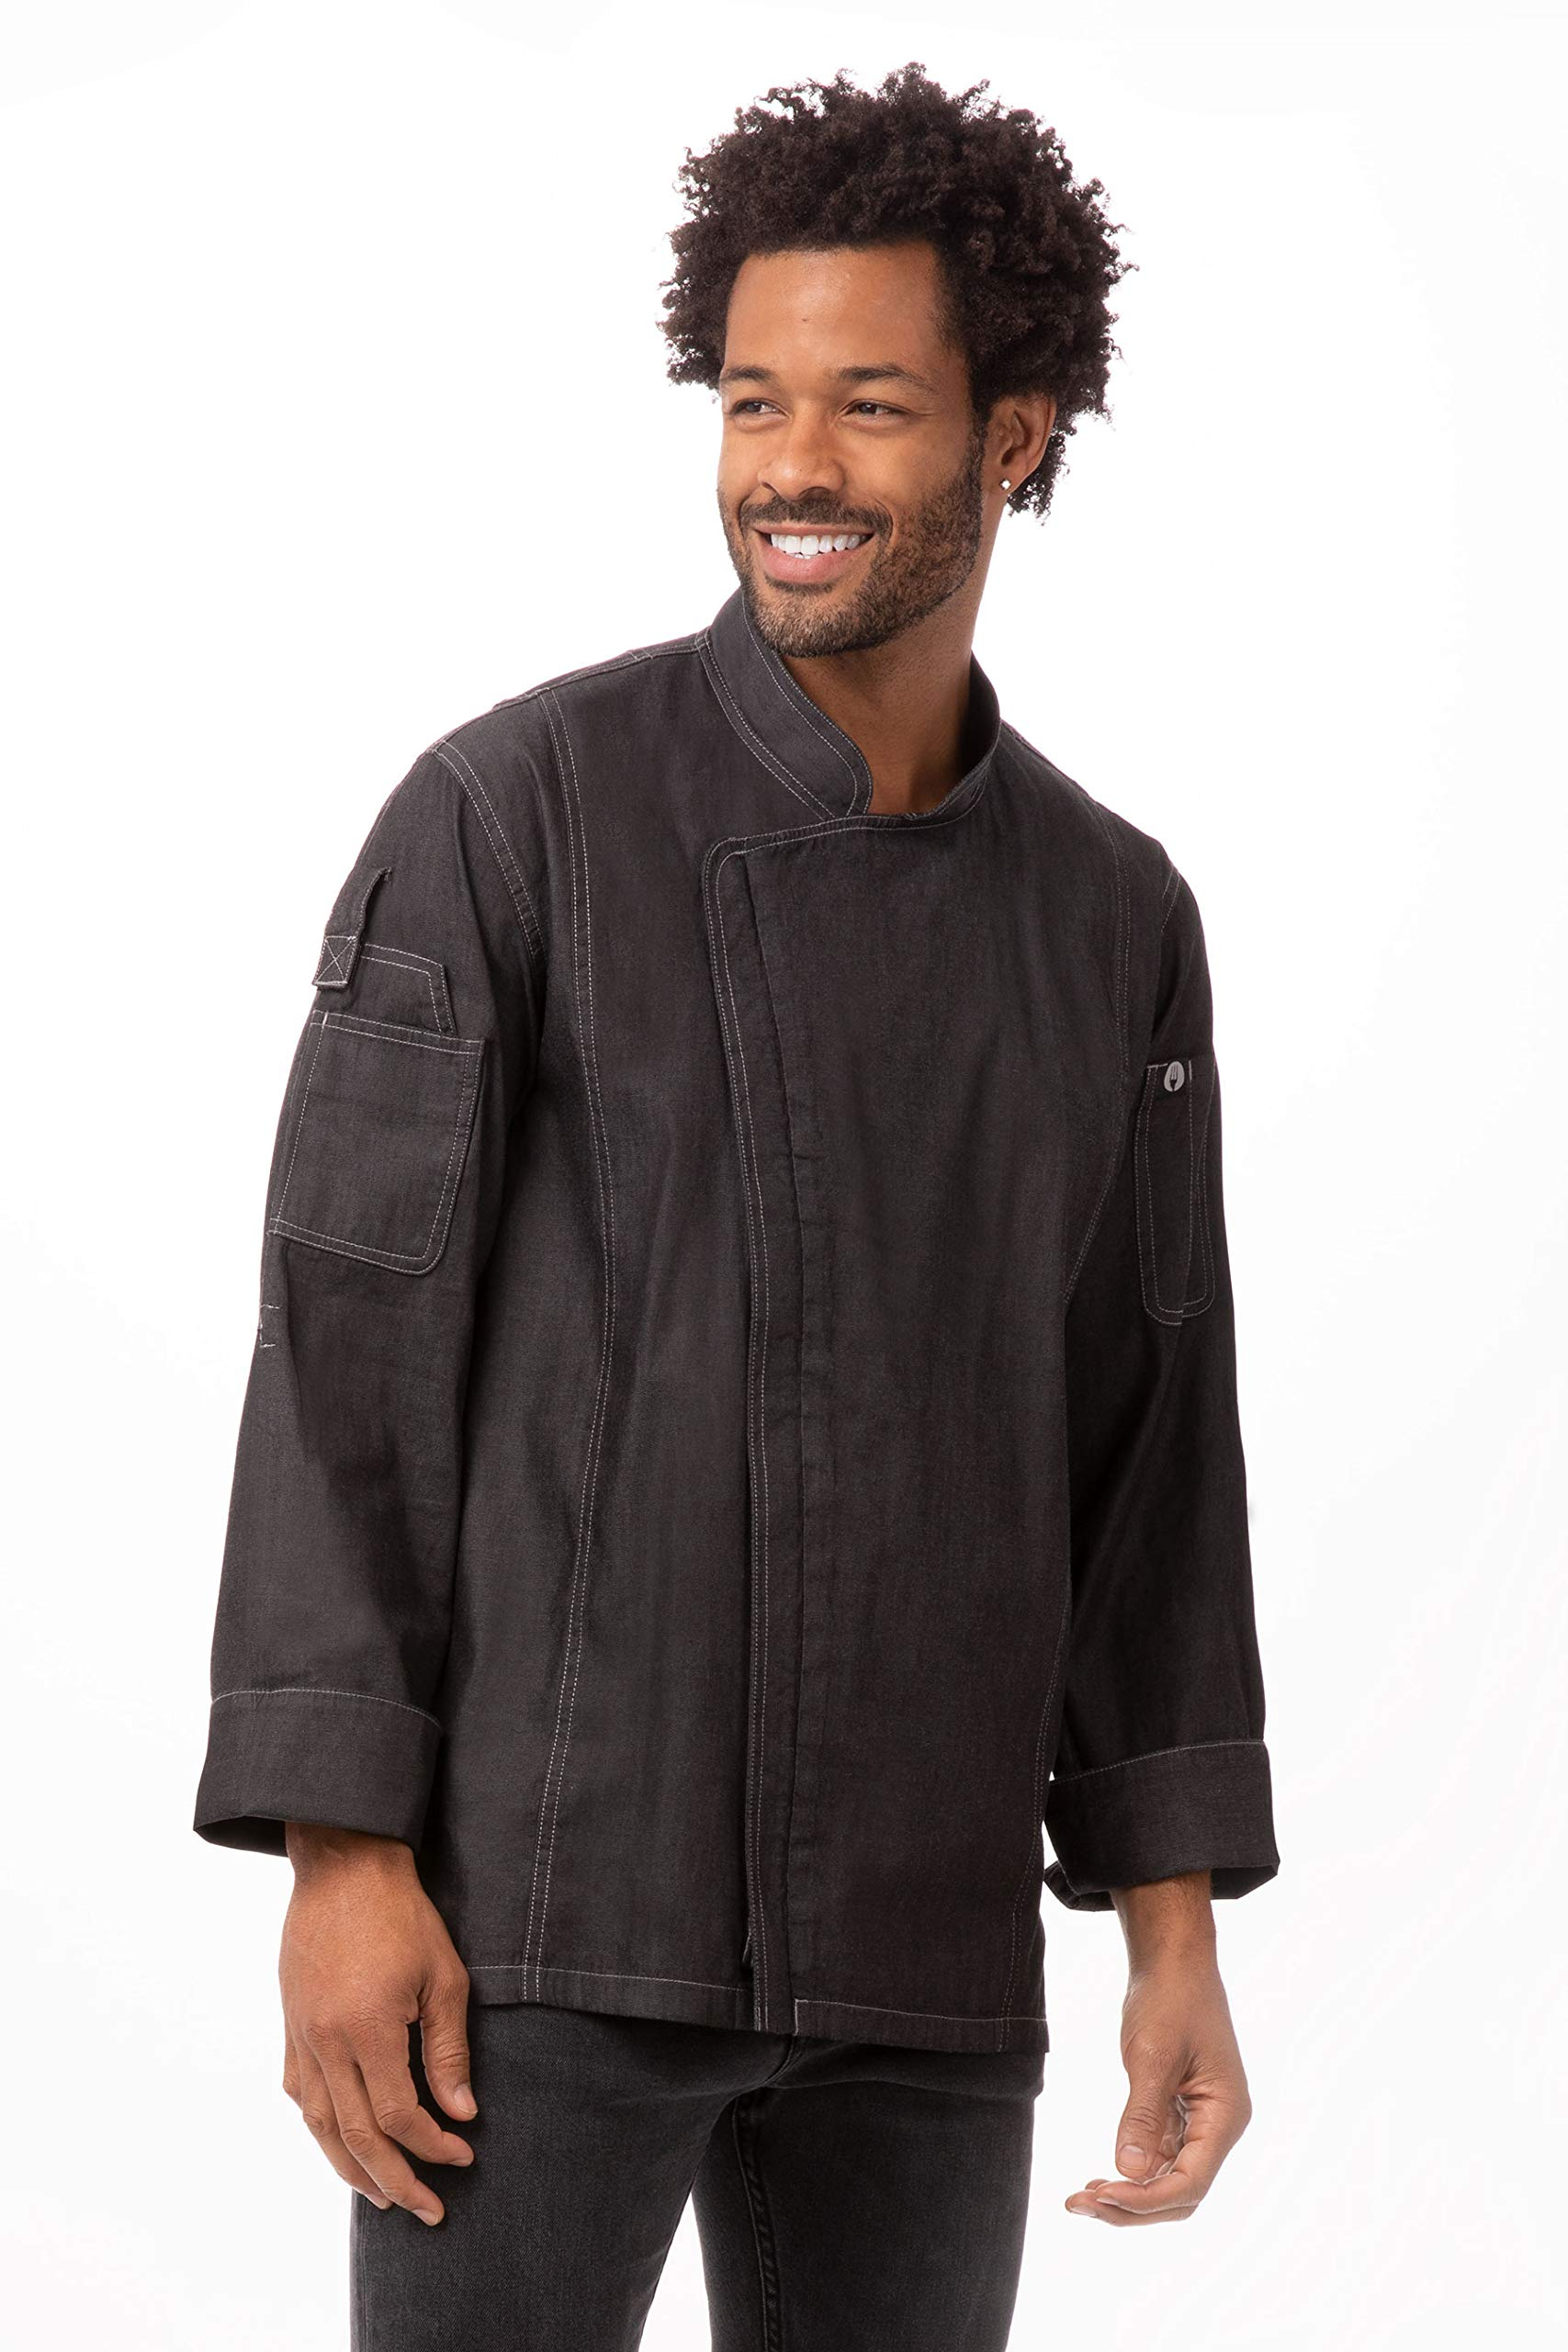 Chef Works Men's Gramercy Denim Chef Coat, Black, X-Large by Chef Works